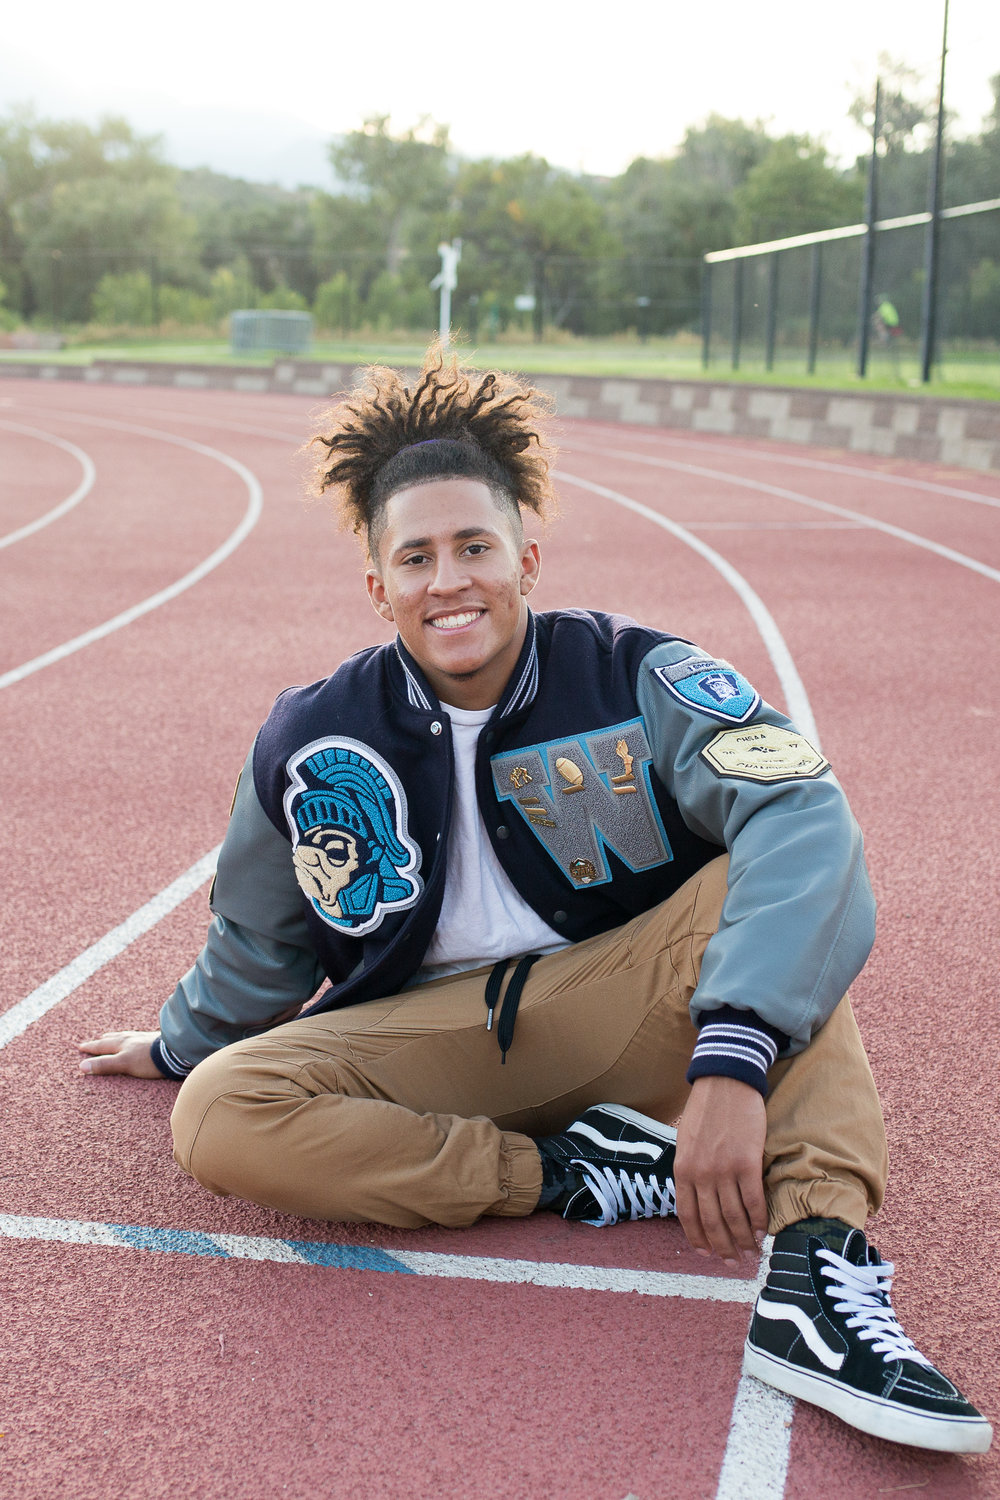 Colorado Springs Senior Photography Widefield high school senior in varsity jacket sitting on a running track